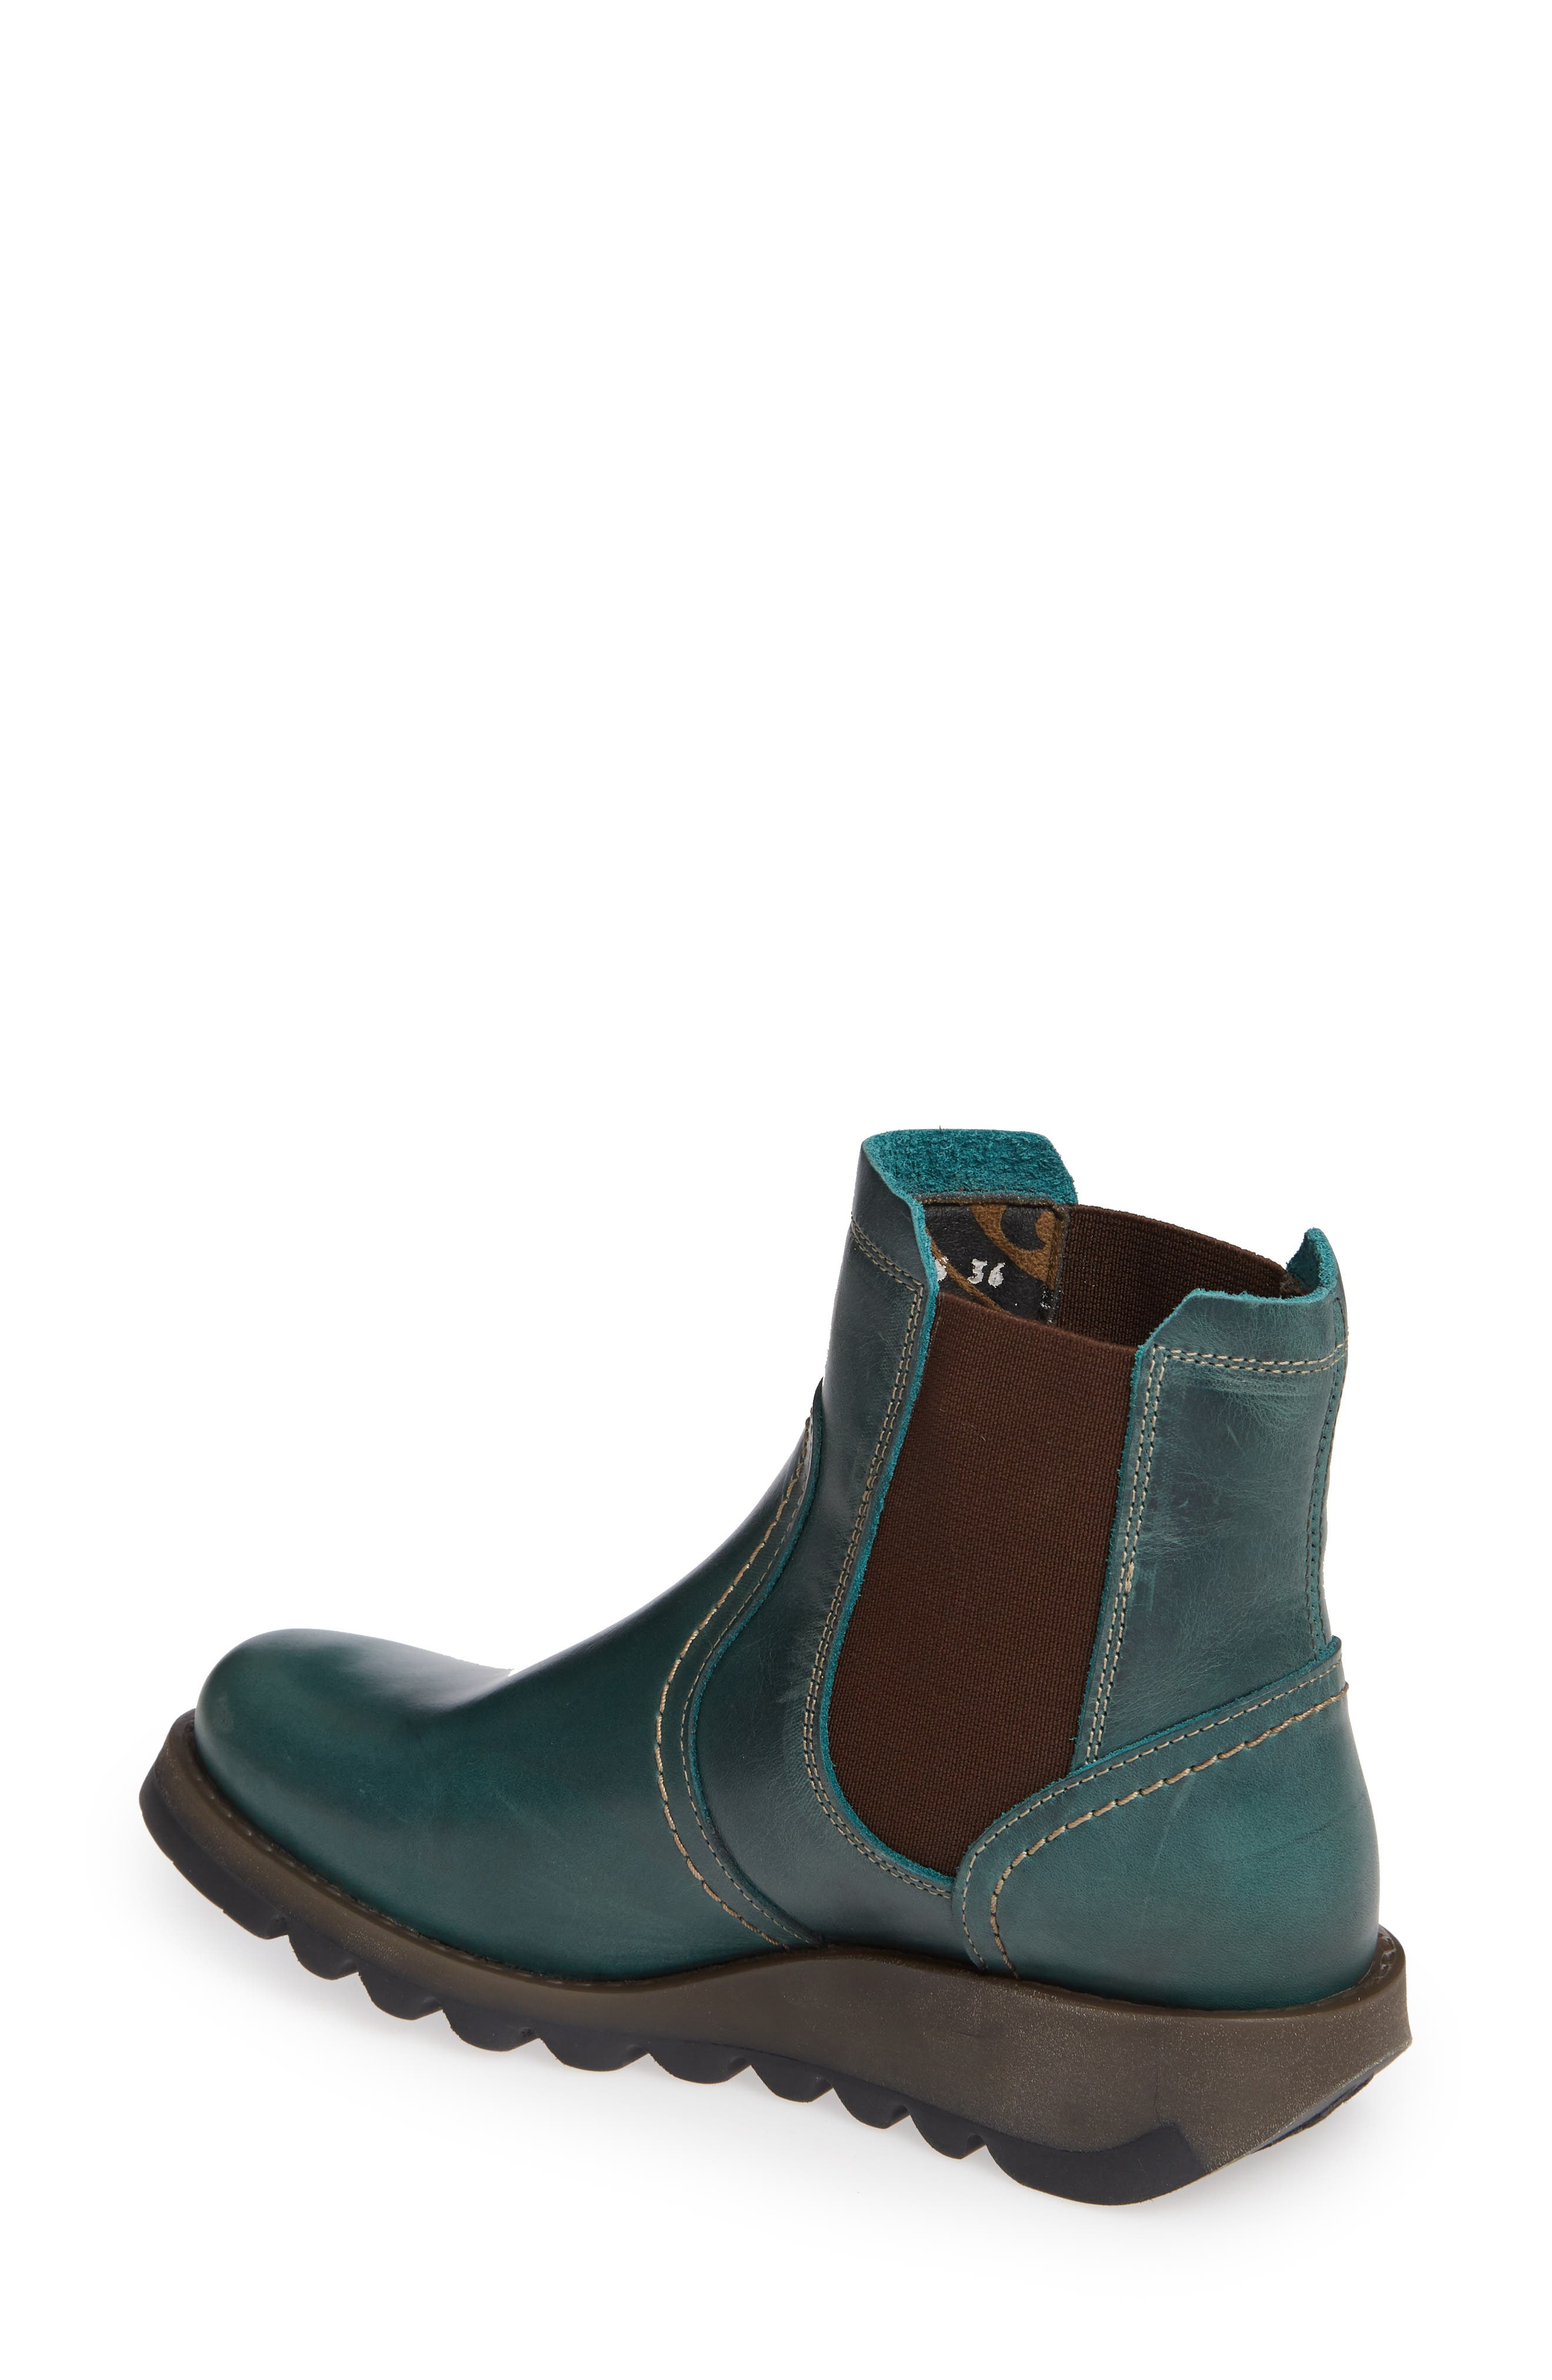 Scon Waterproof Gore-Tex<sup>®</sup> Chelsea Boot,                             Alternate thumbnail 2, color,                             Petrol